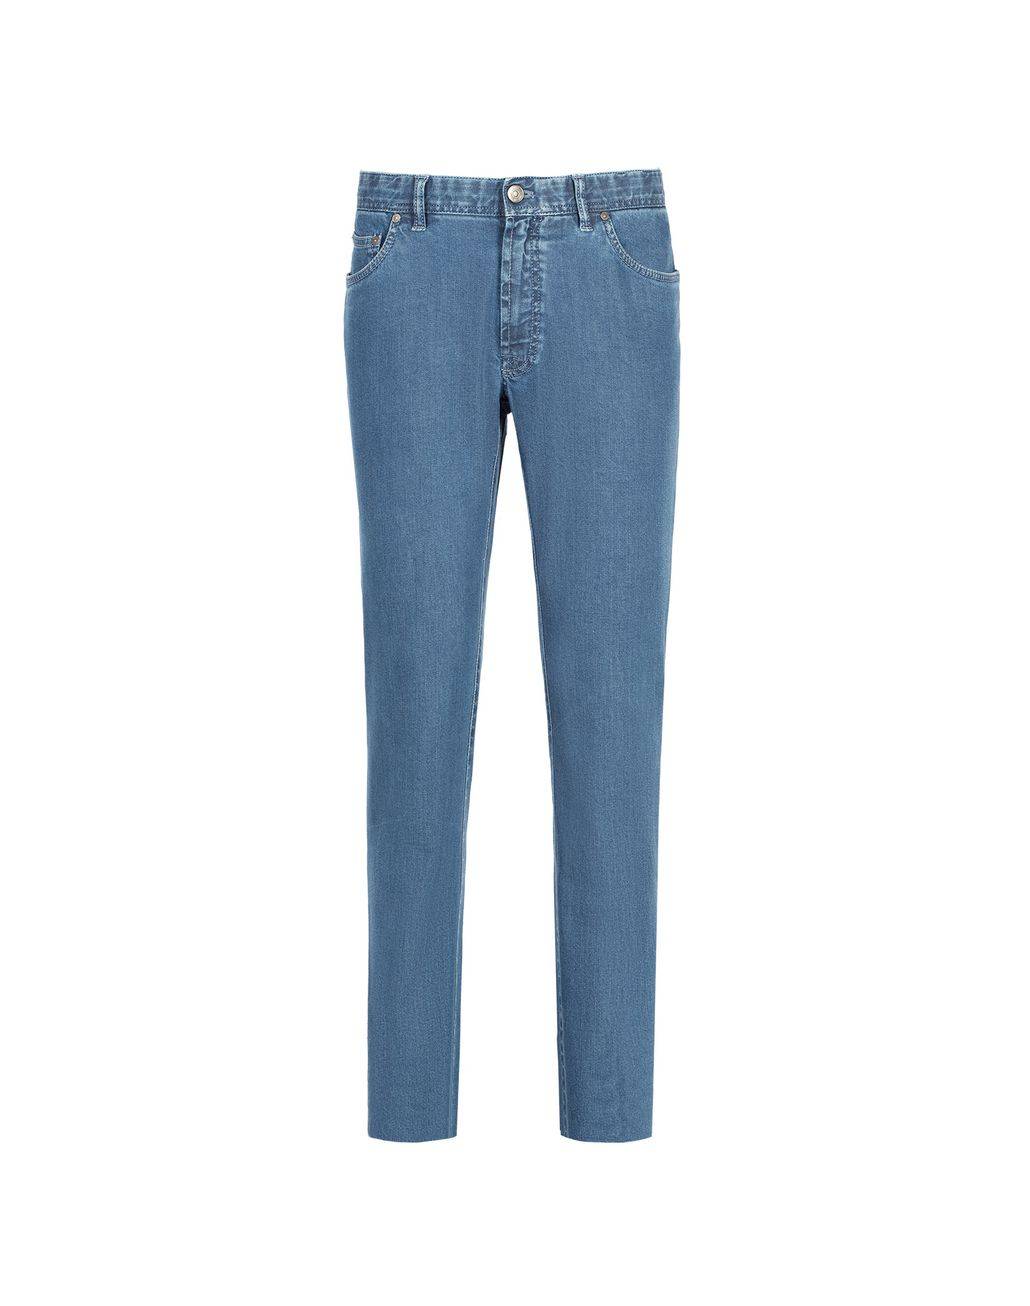 BRIONI Essential' Light Blue Regular Fit Jeans Denim Man f